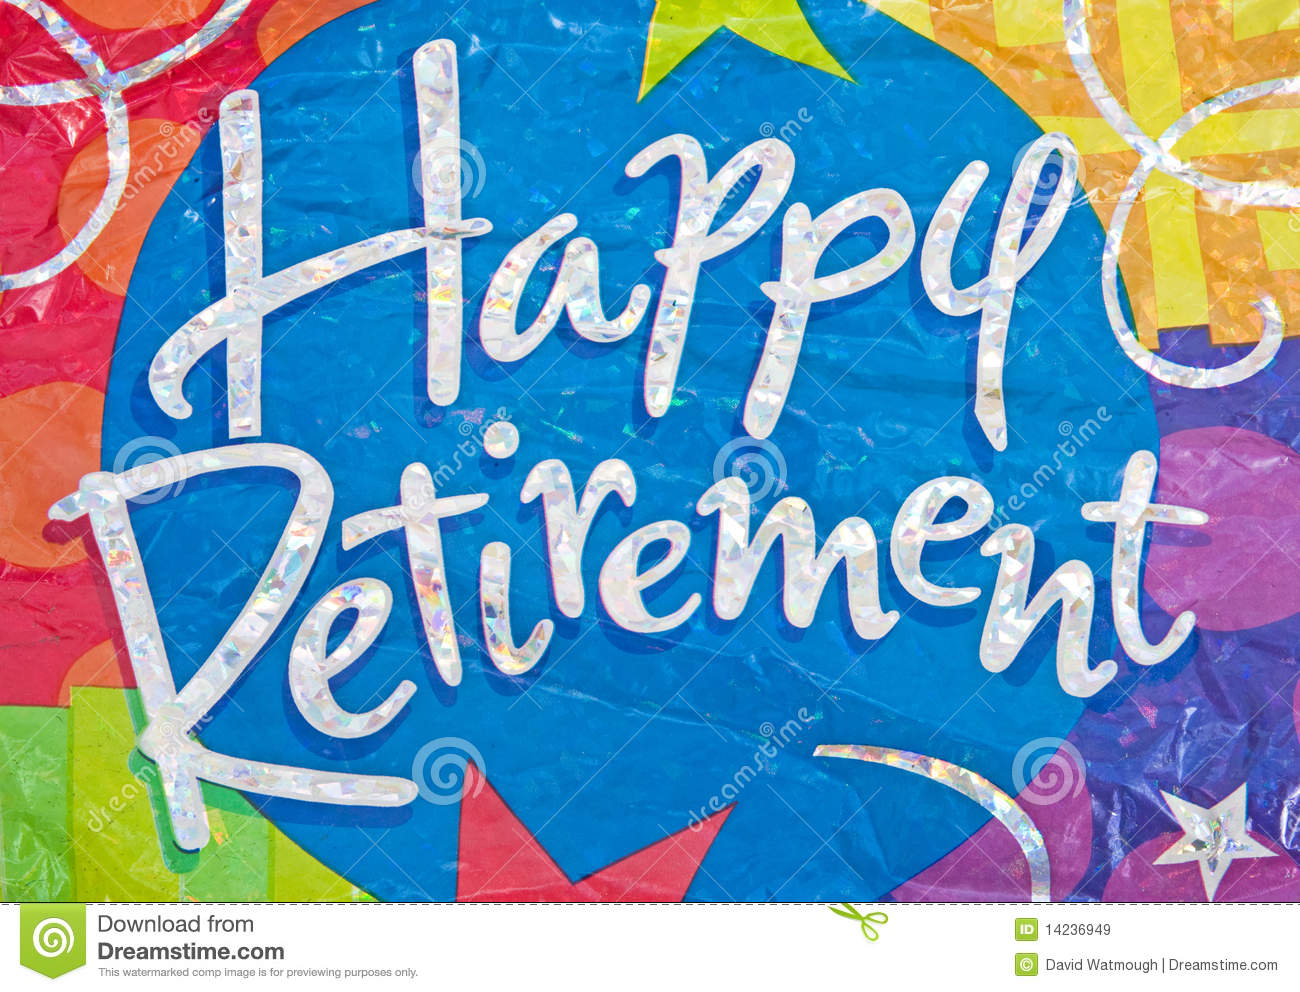 Retirement Time Clipart - Clipart Kid